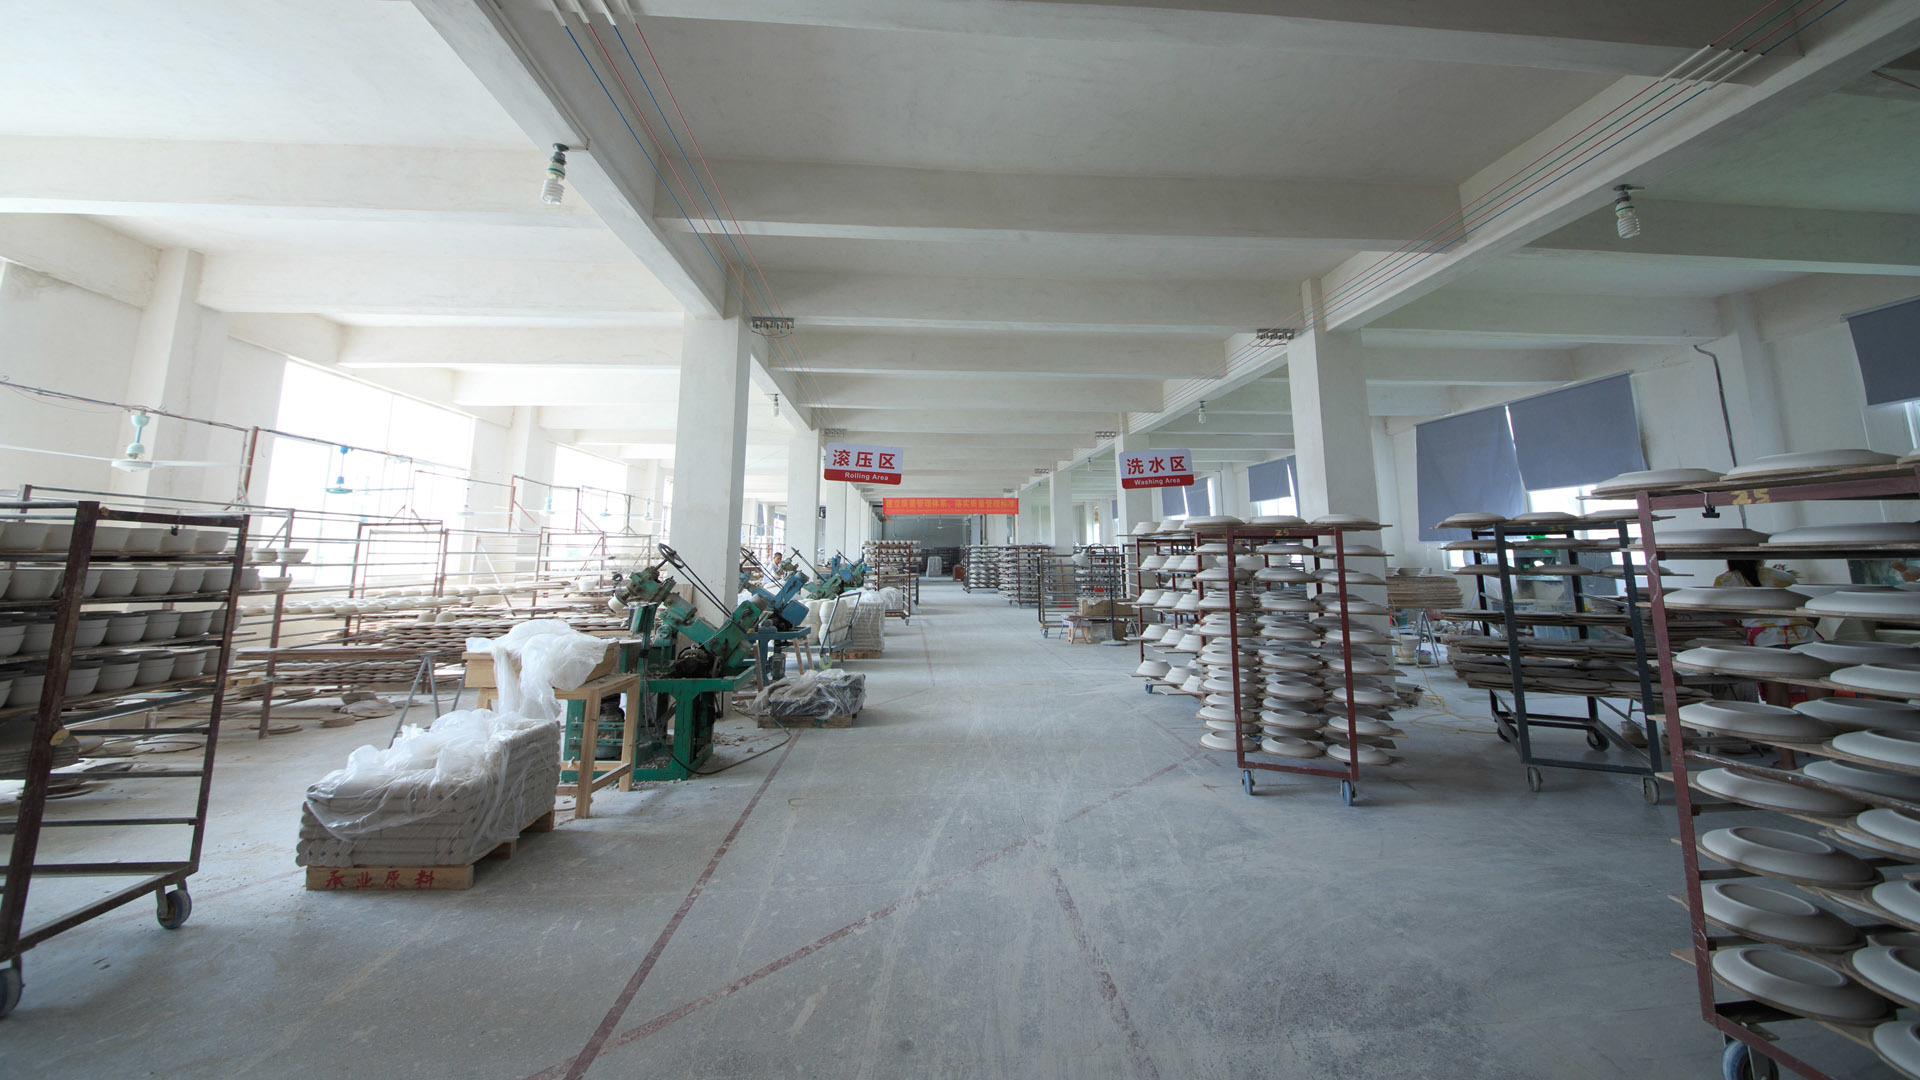 The second floor of the Two Eight Ceramics Factory - Rolling Workshop